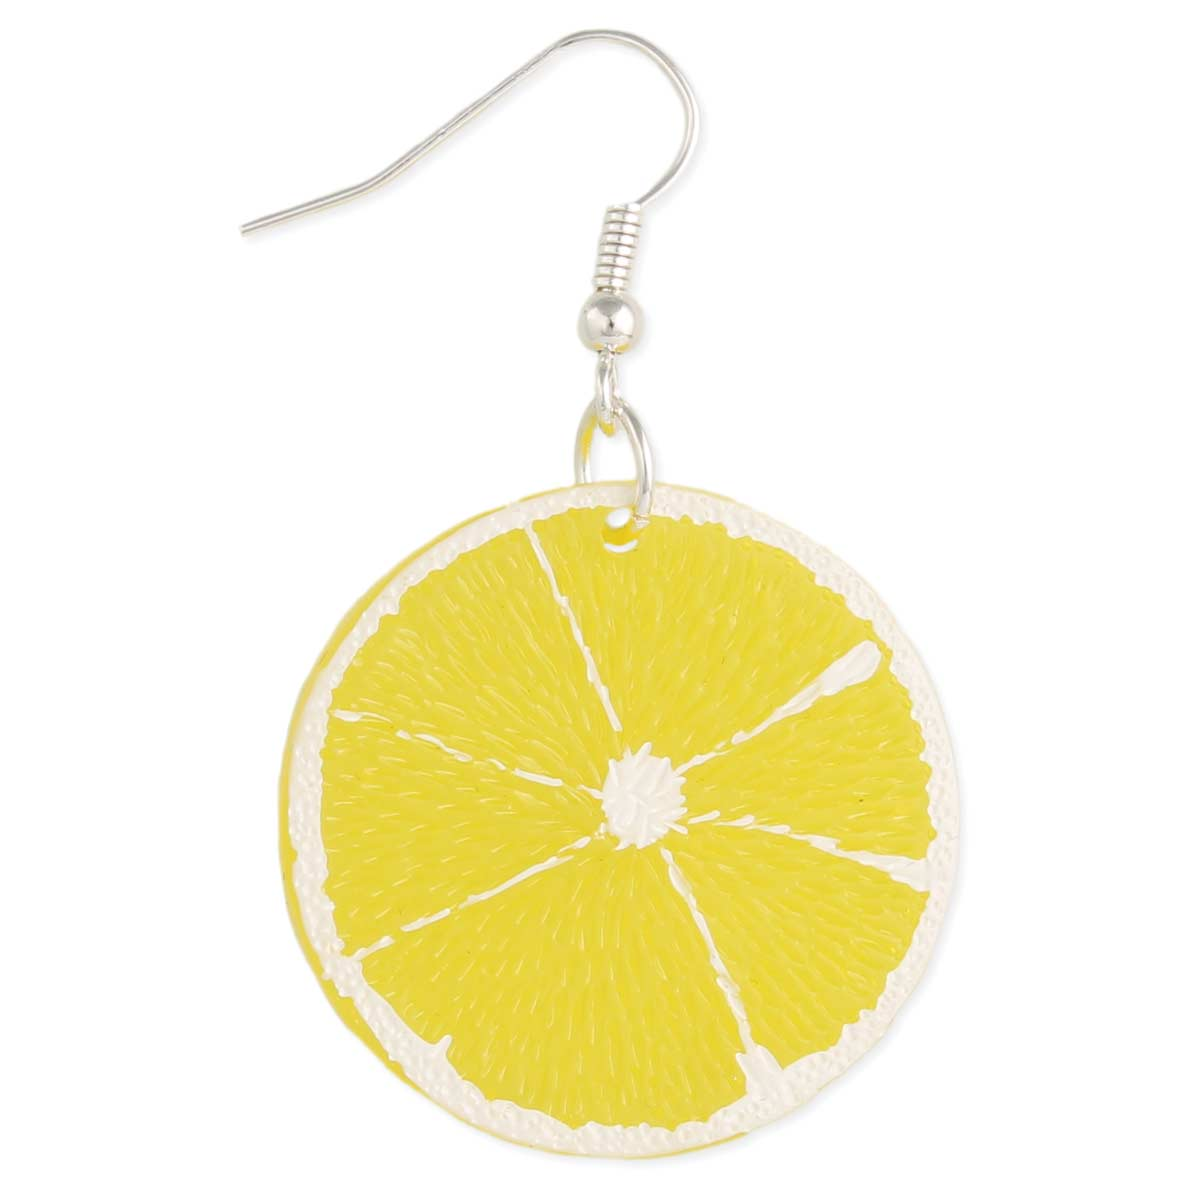 Yellow Lemon Slice Earring